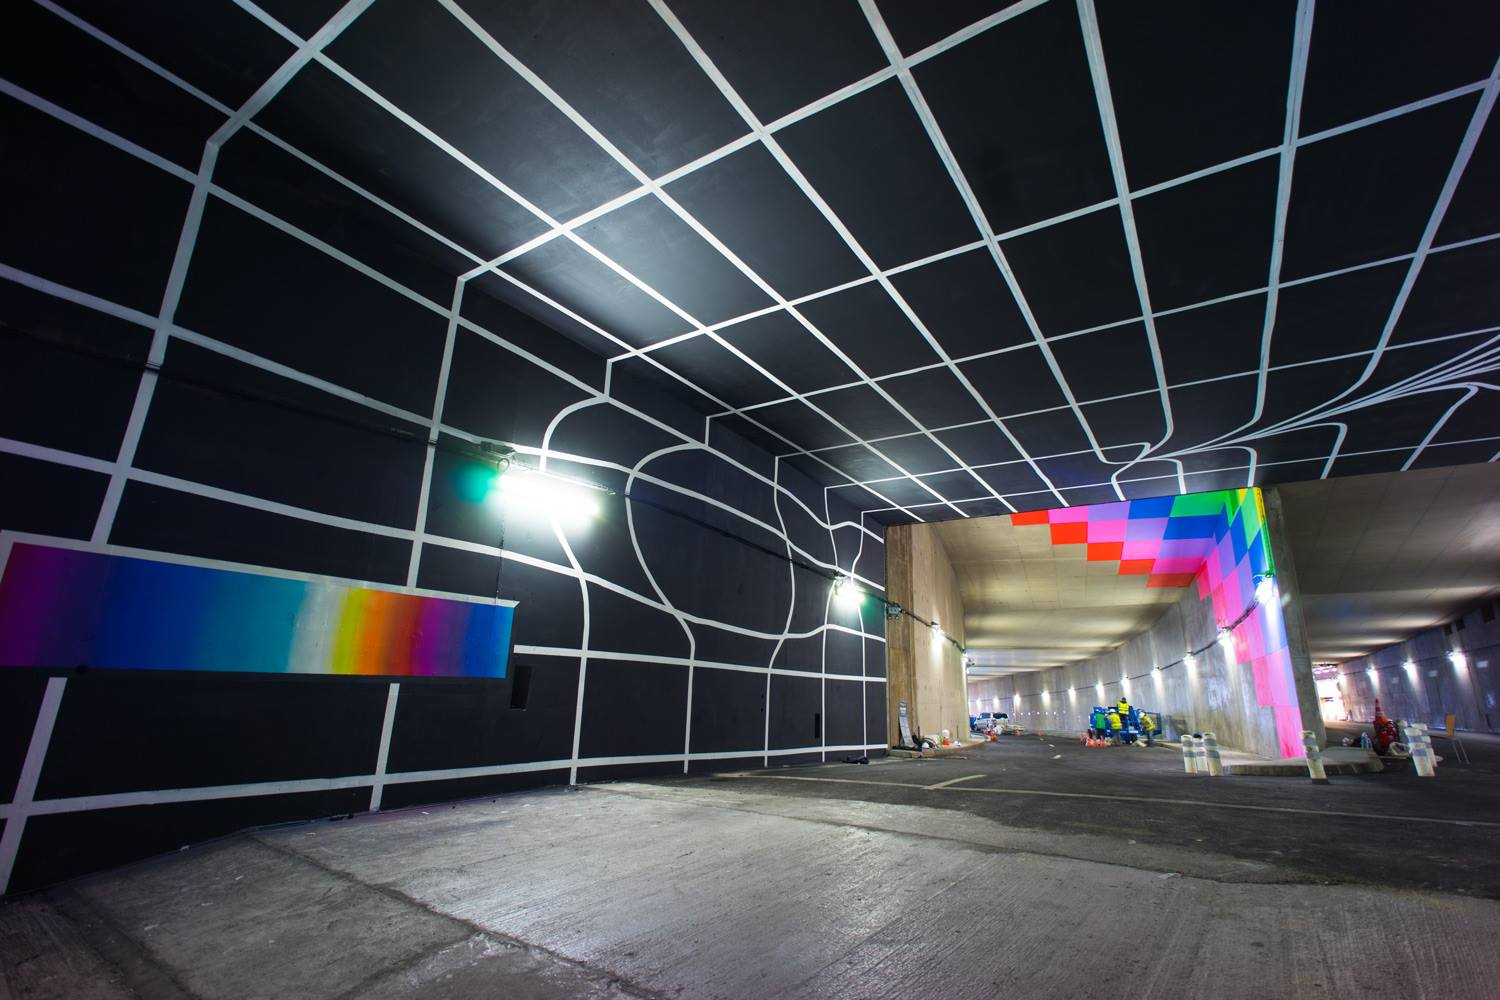 Lasco Project (Tron Paris), by Felipe Pantone